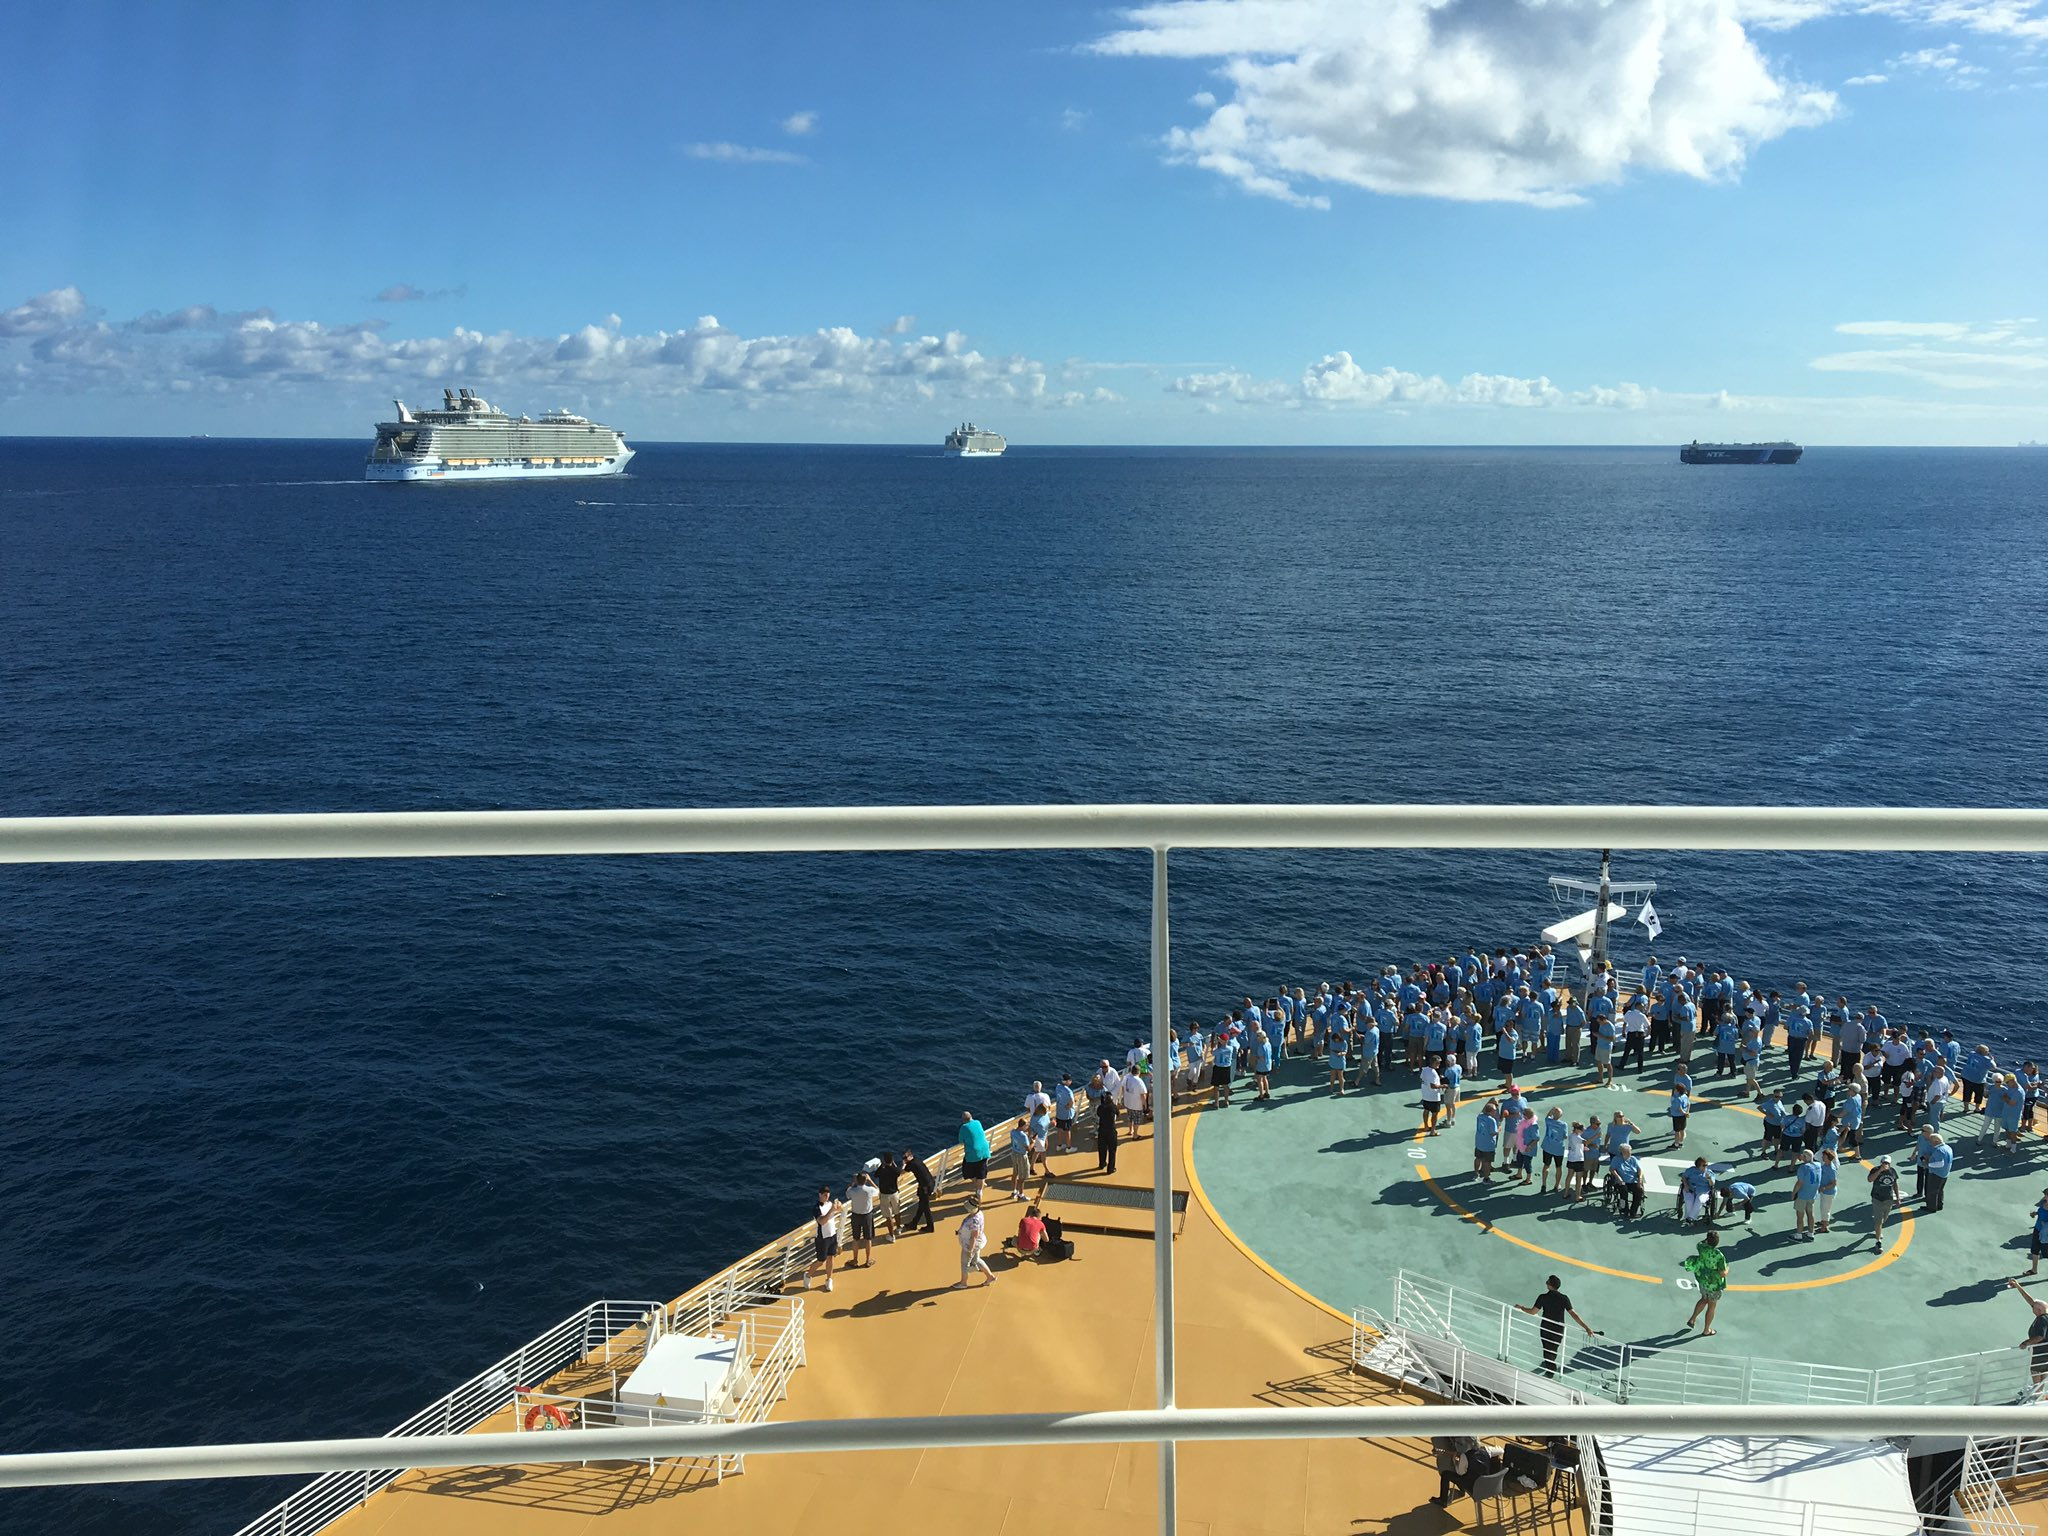 Cruise Deals Oasis Olivia Rose Inc Coupon - Oasis of the seas cruise ship prices